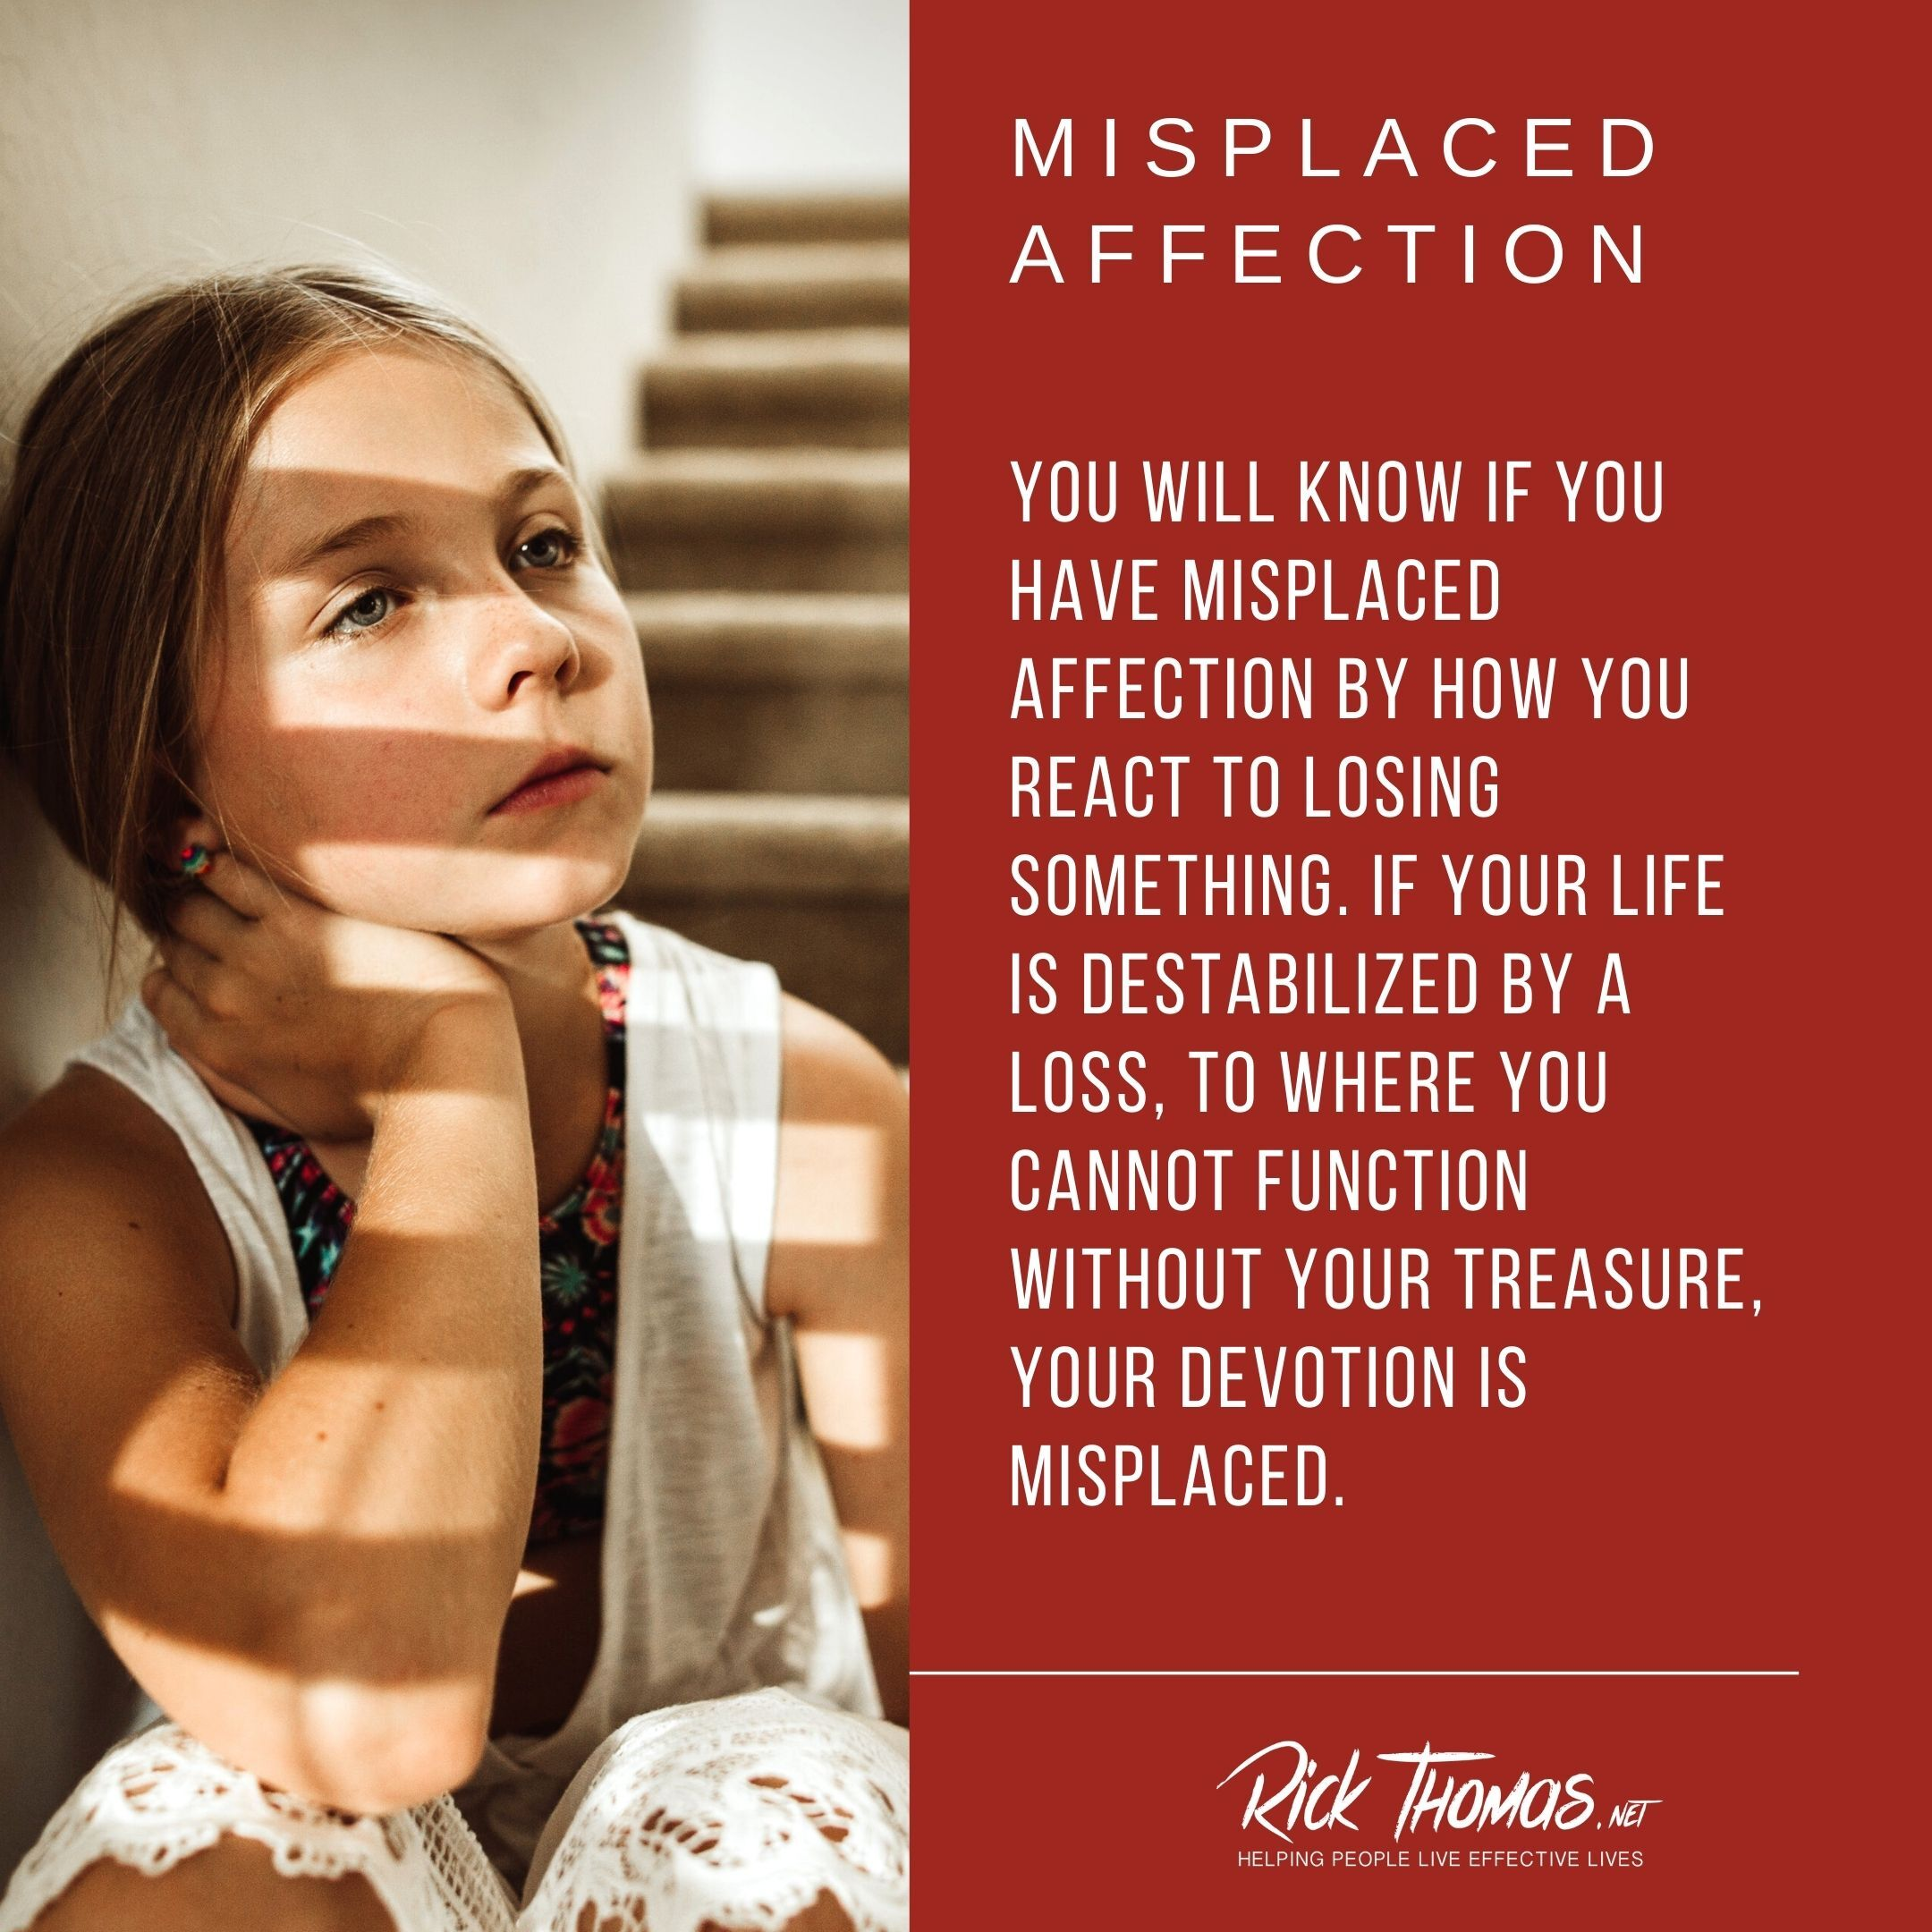 Misplaced Affection